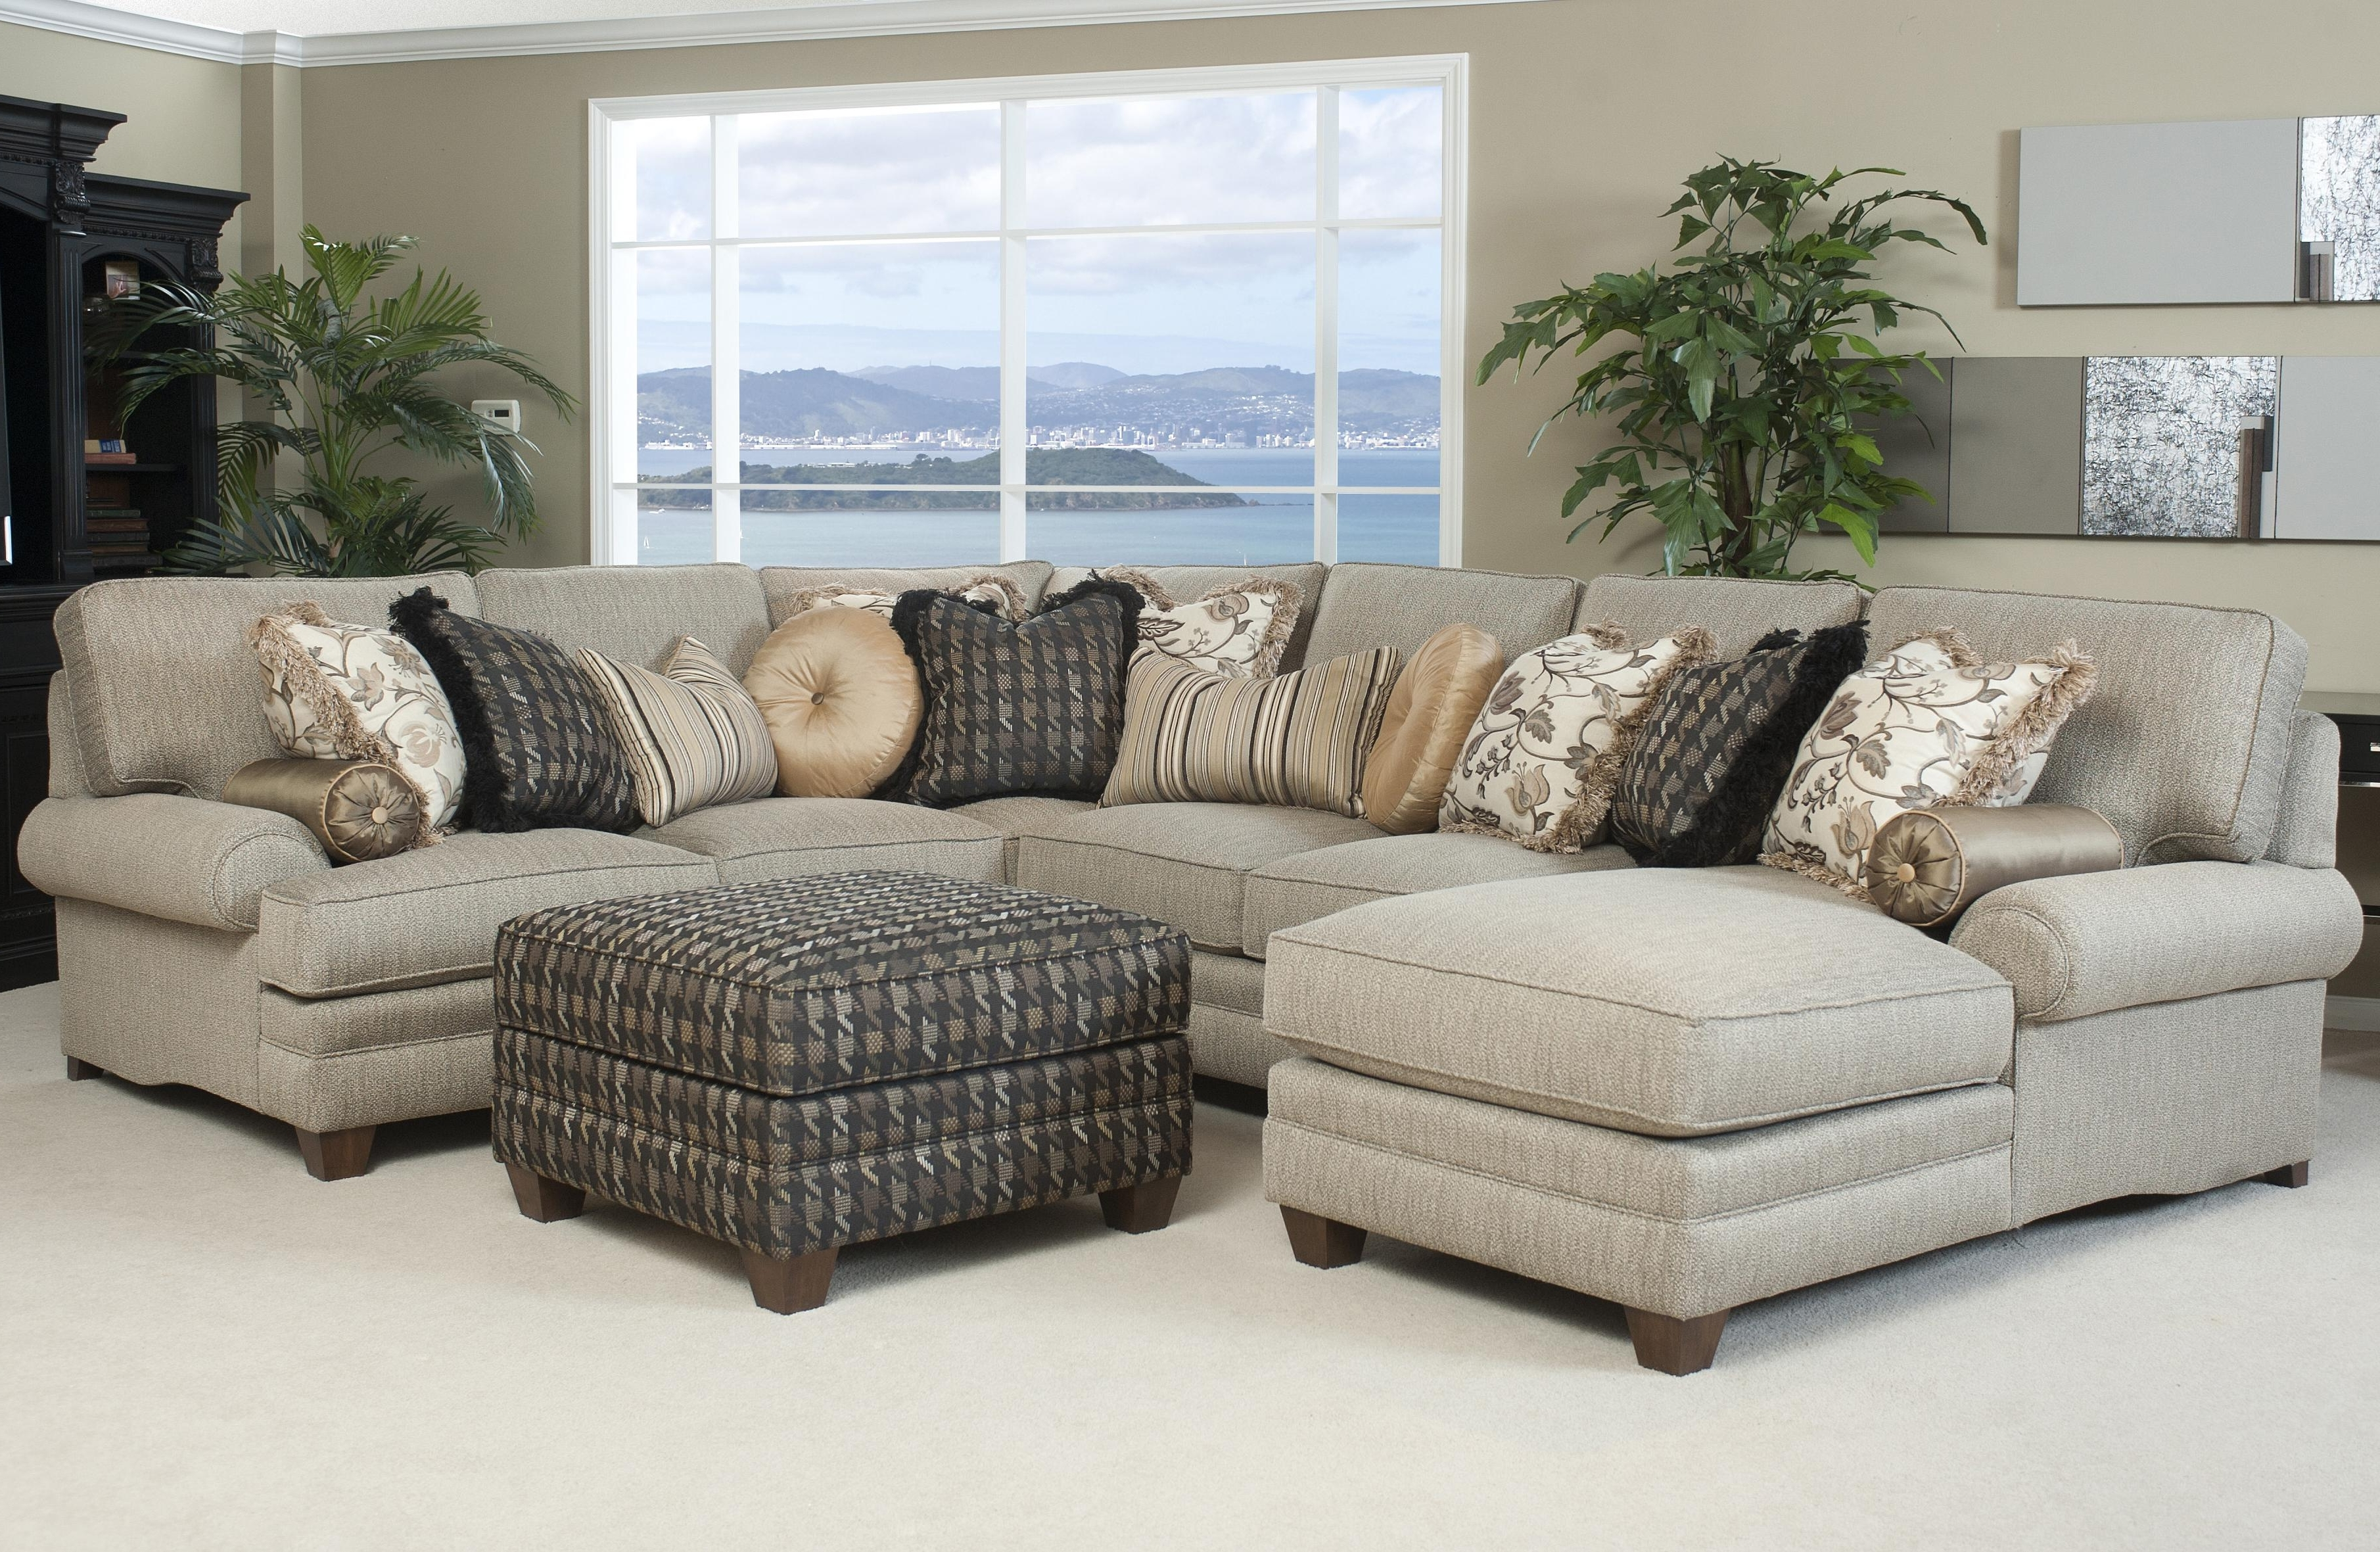 Aifaresidency In Latest On Sale Sectional Sofas (View 2 of 20)